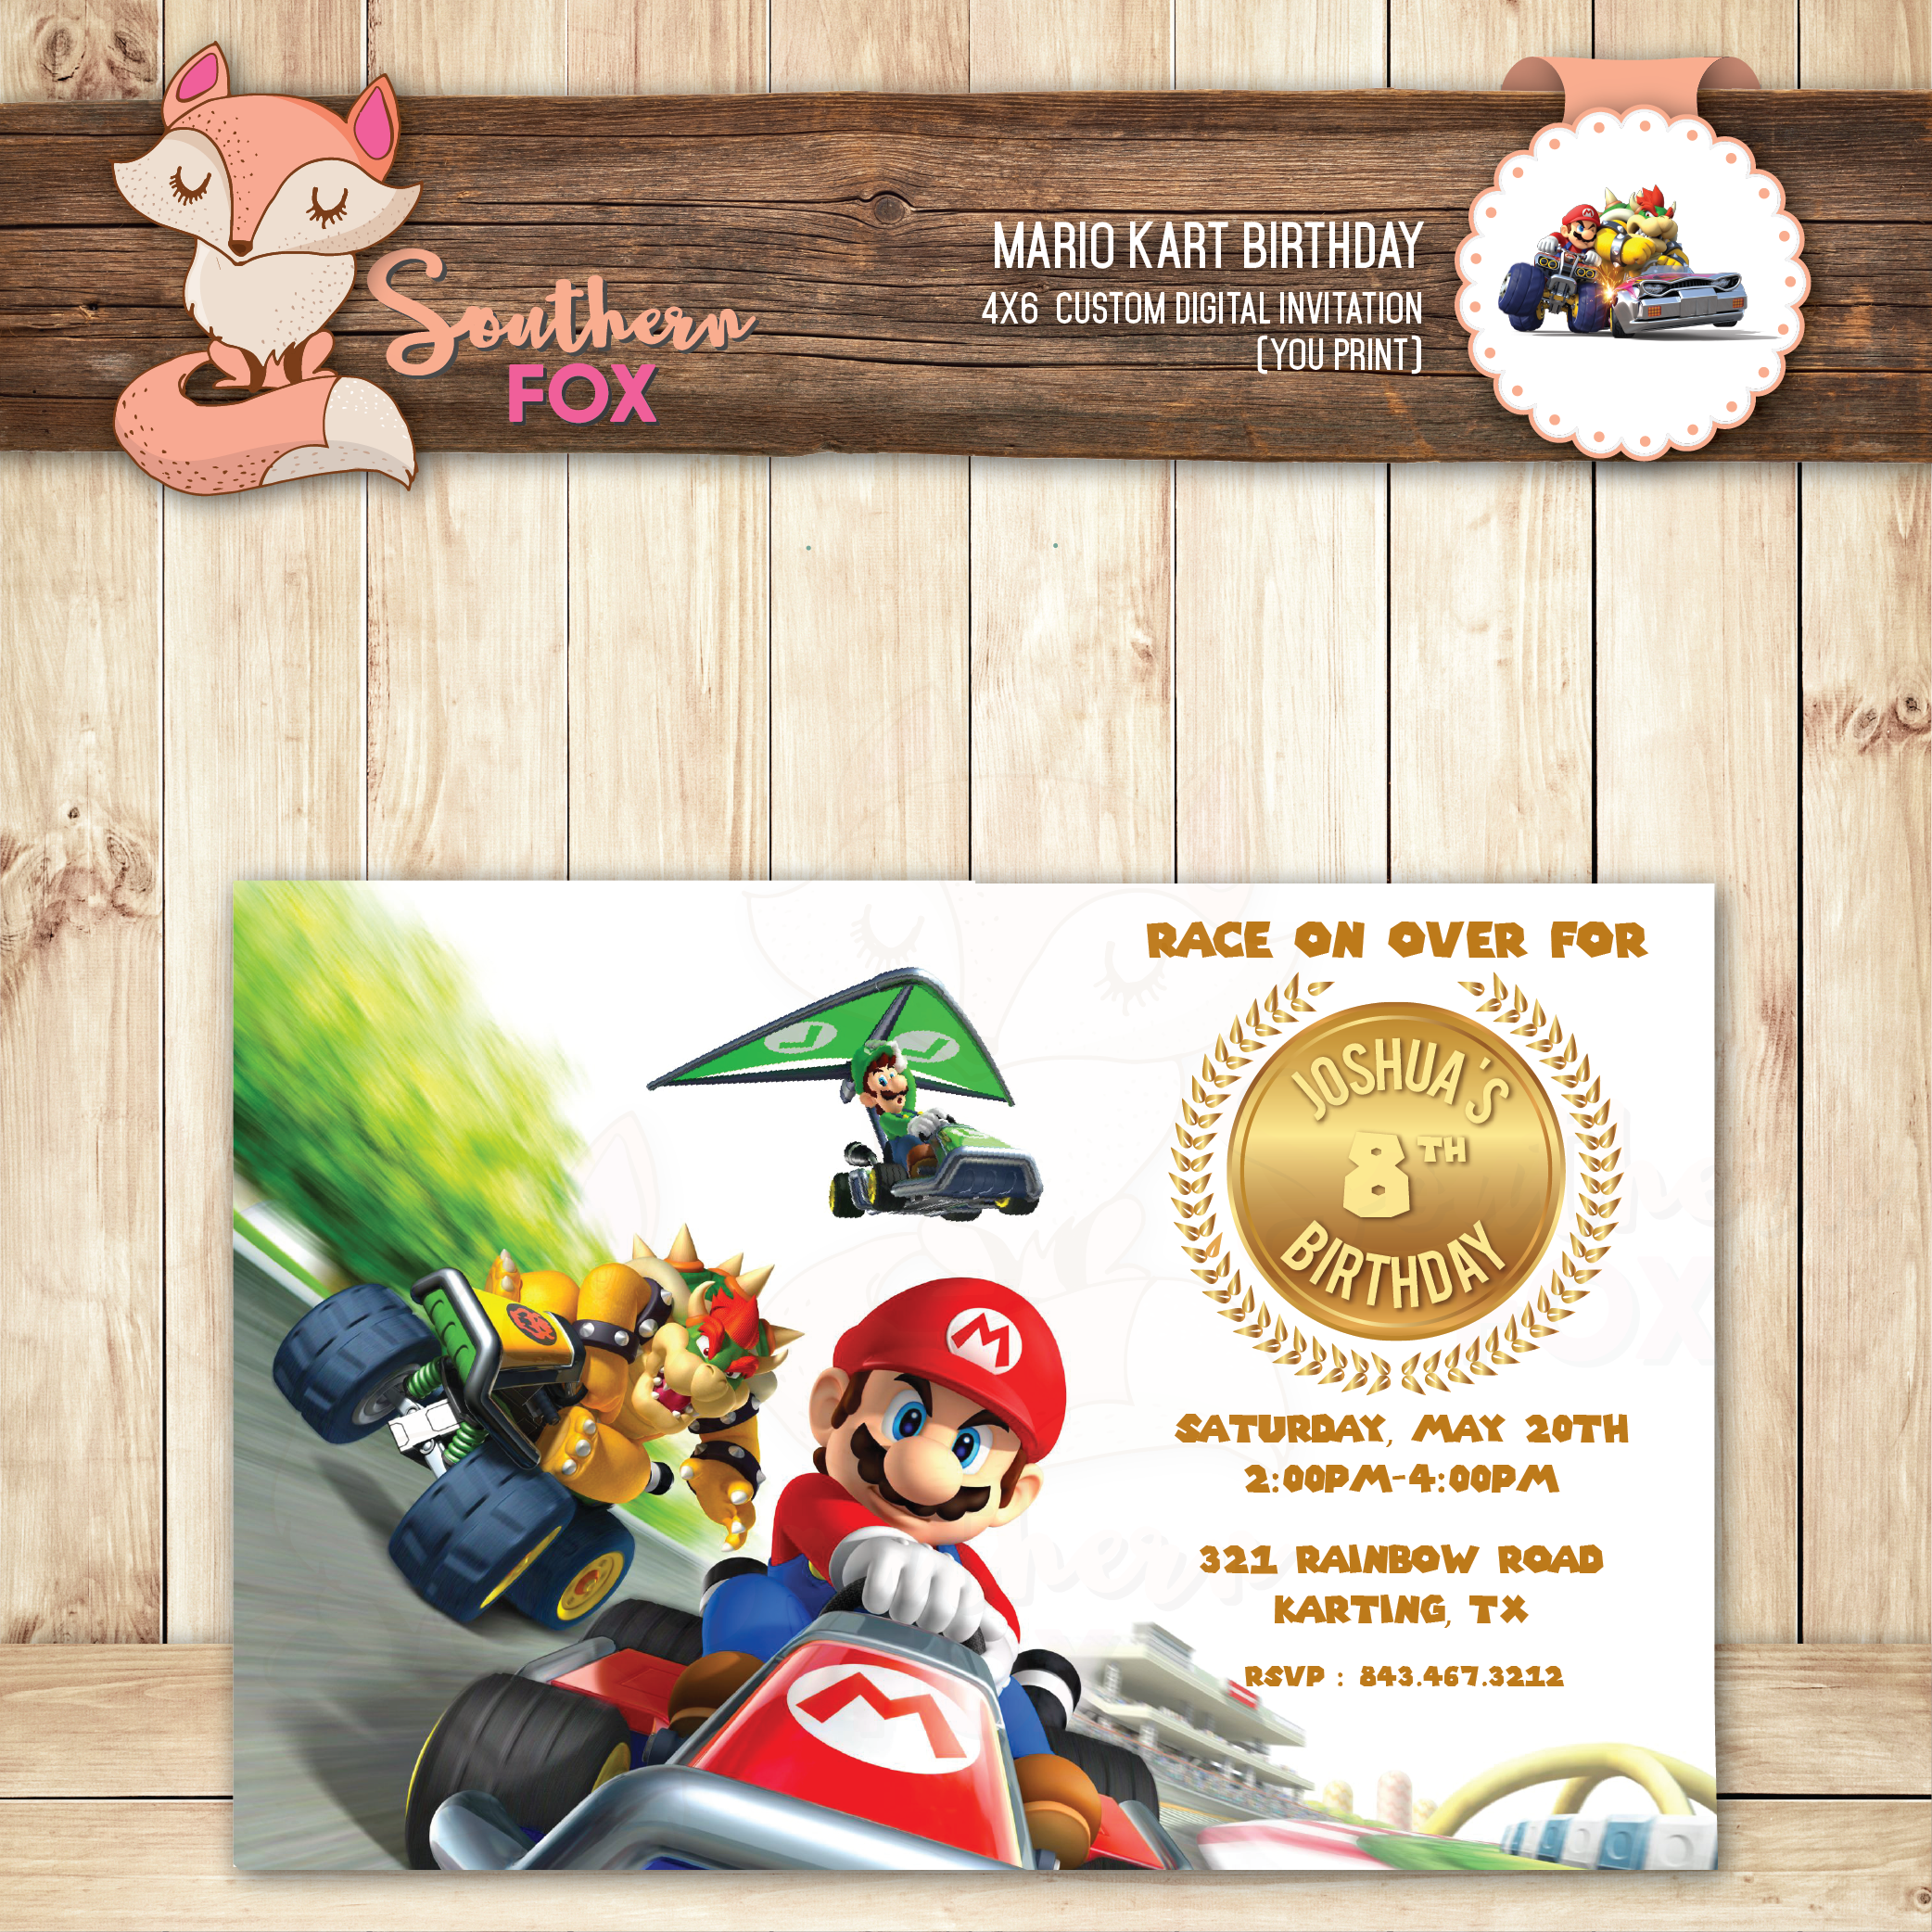 Mario Kart Invitation-Digital Birthday Invitation- Mario Kart ...